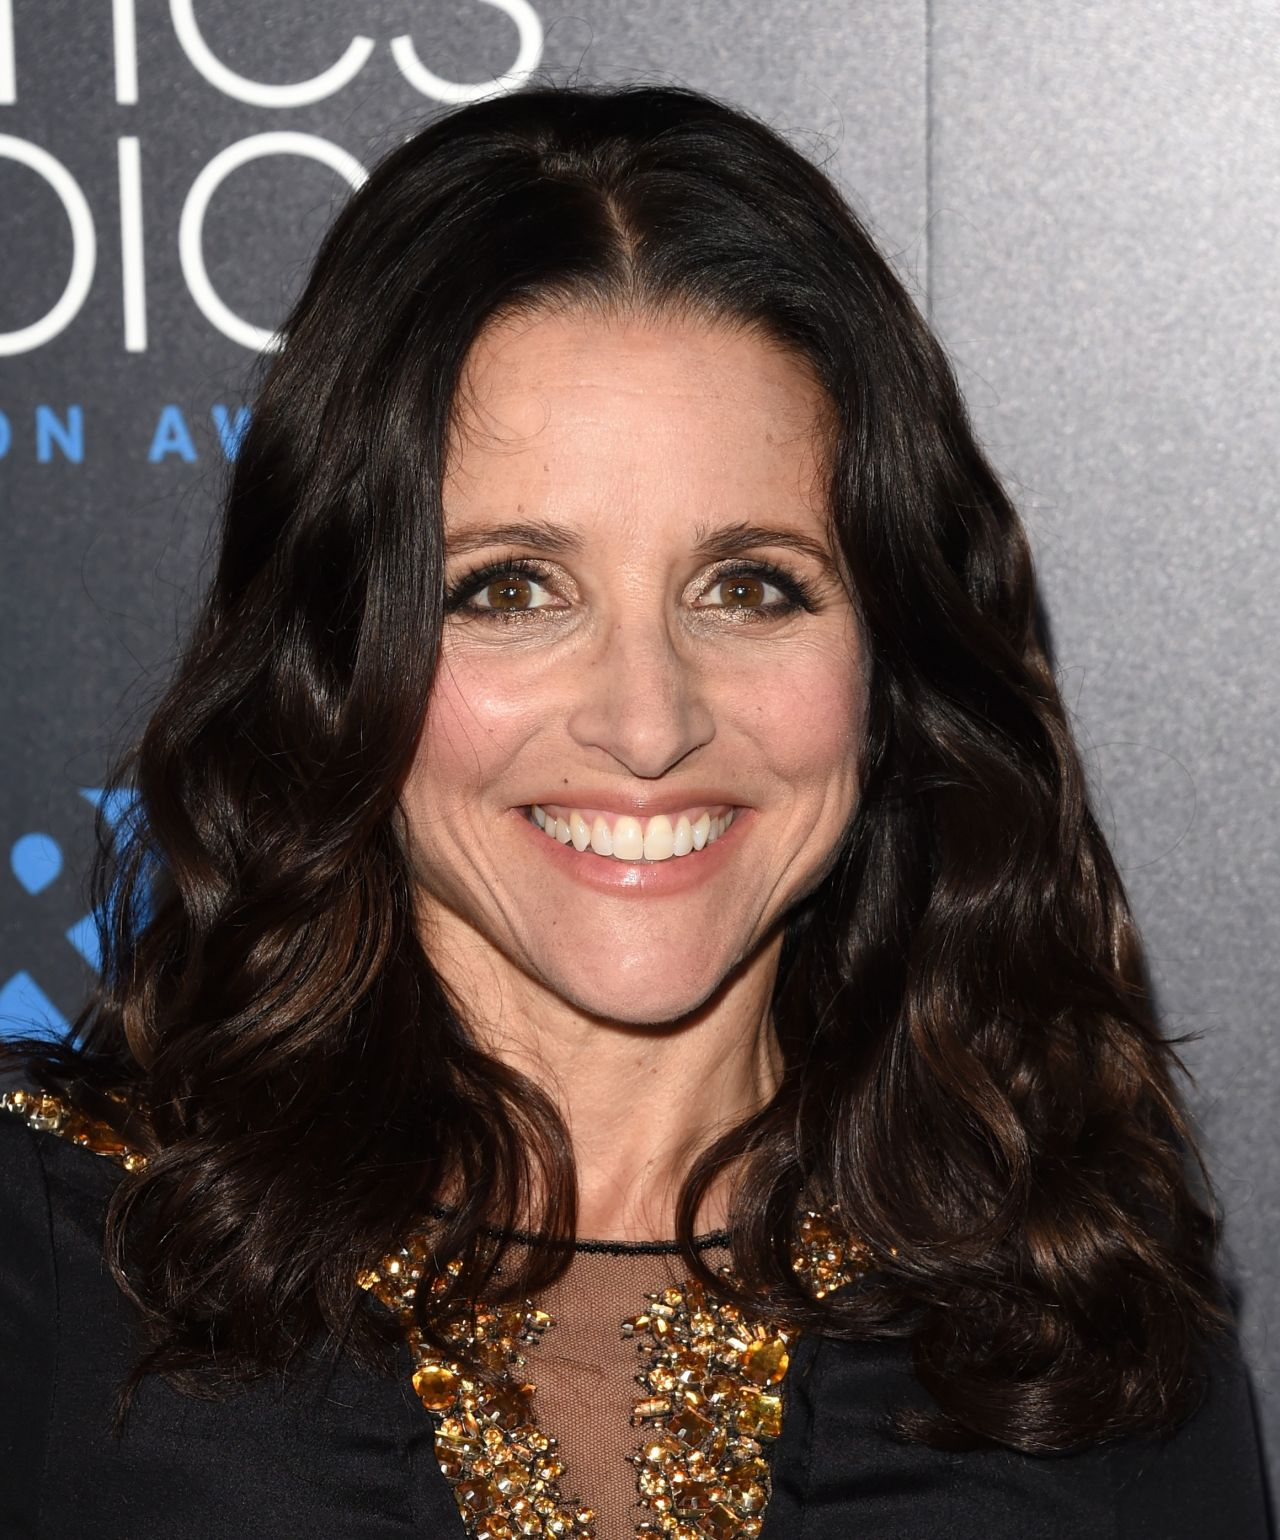 Julia Louis-Dreyfus – 2015 Critics Choice Television ...: http://celebmafia.com/julia-louis-dreyfus-2015-critics-choice-television-awards-in-beverly-hills-332014/